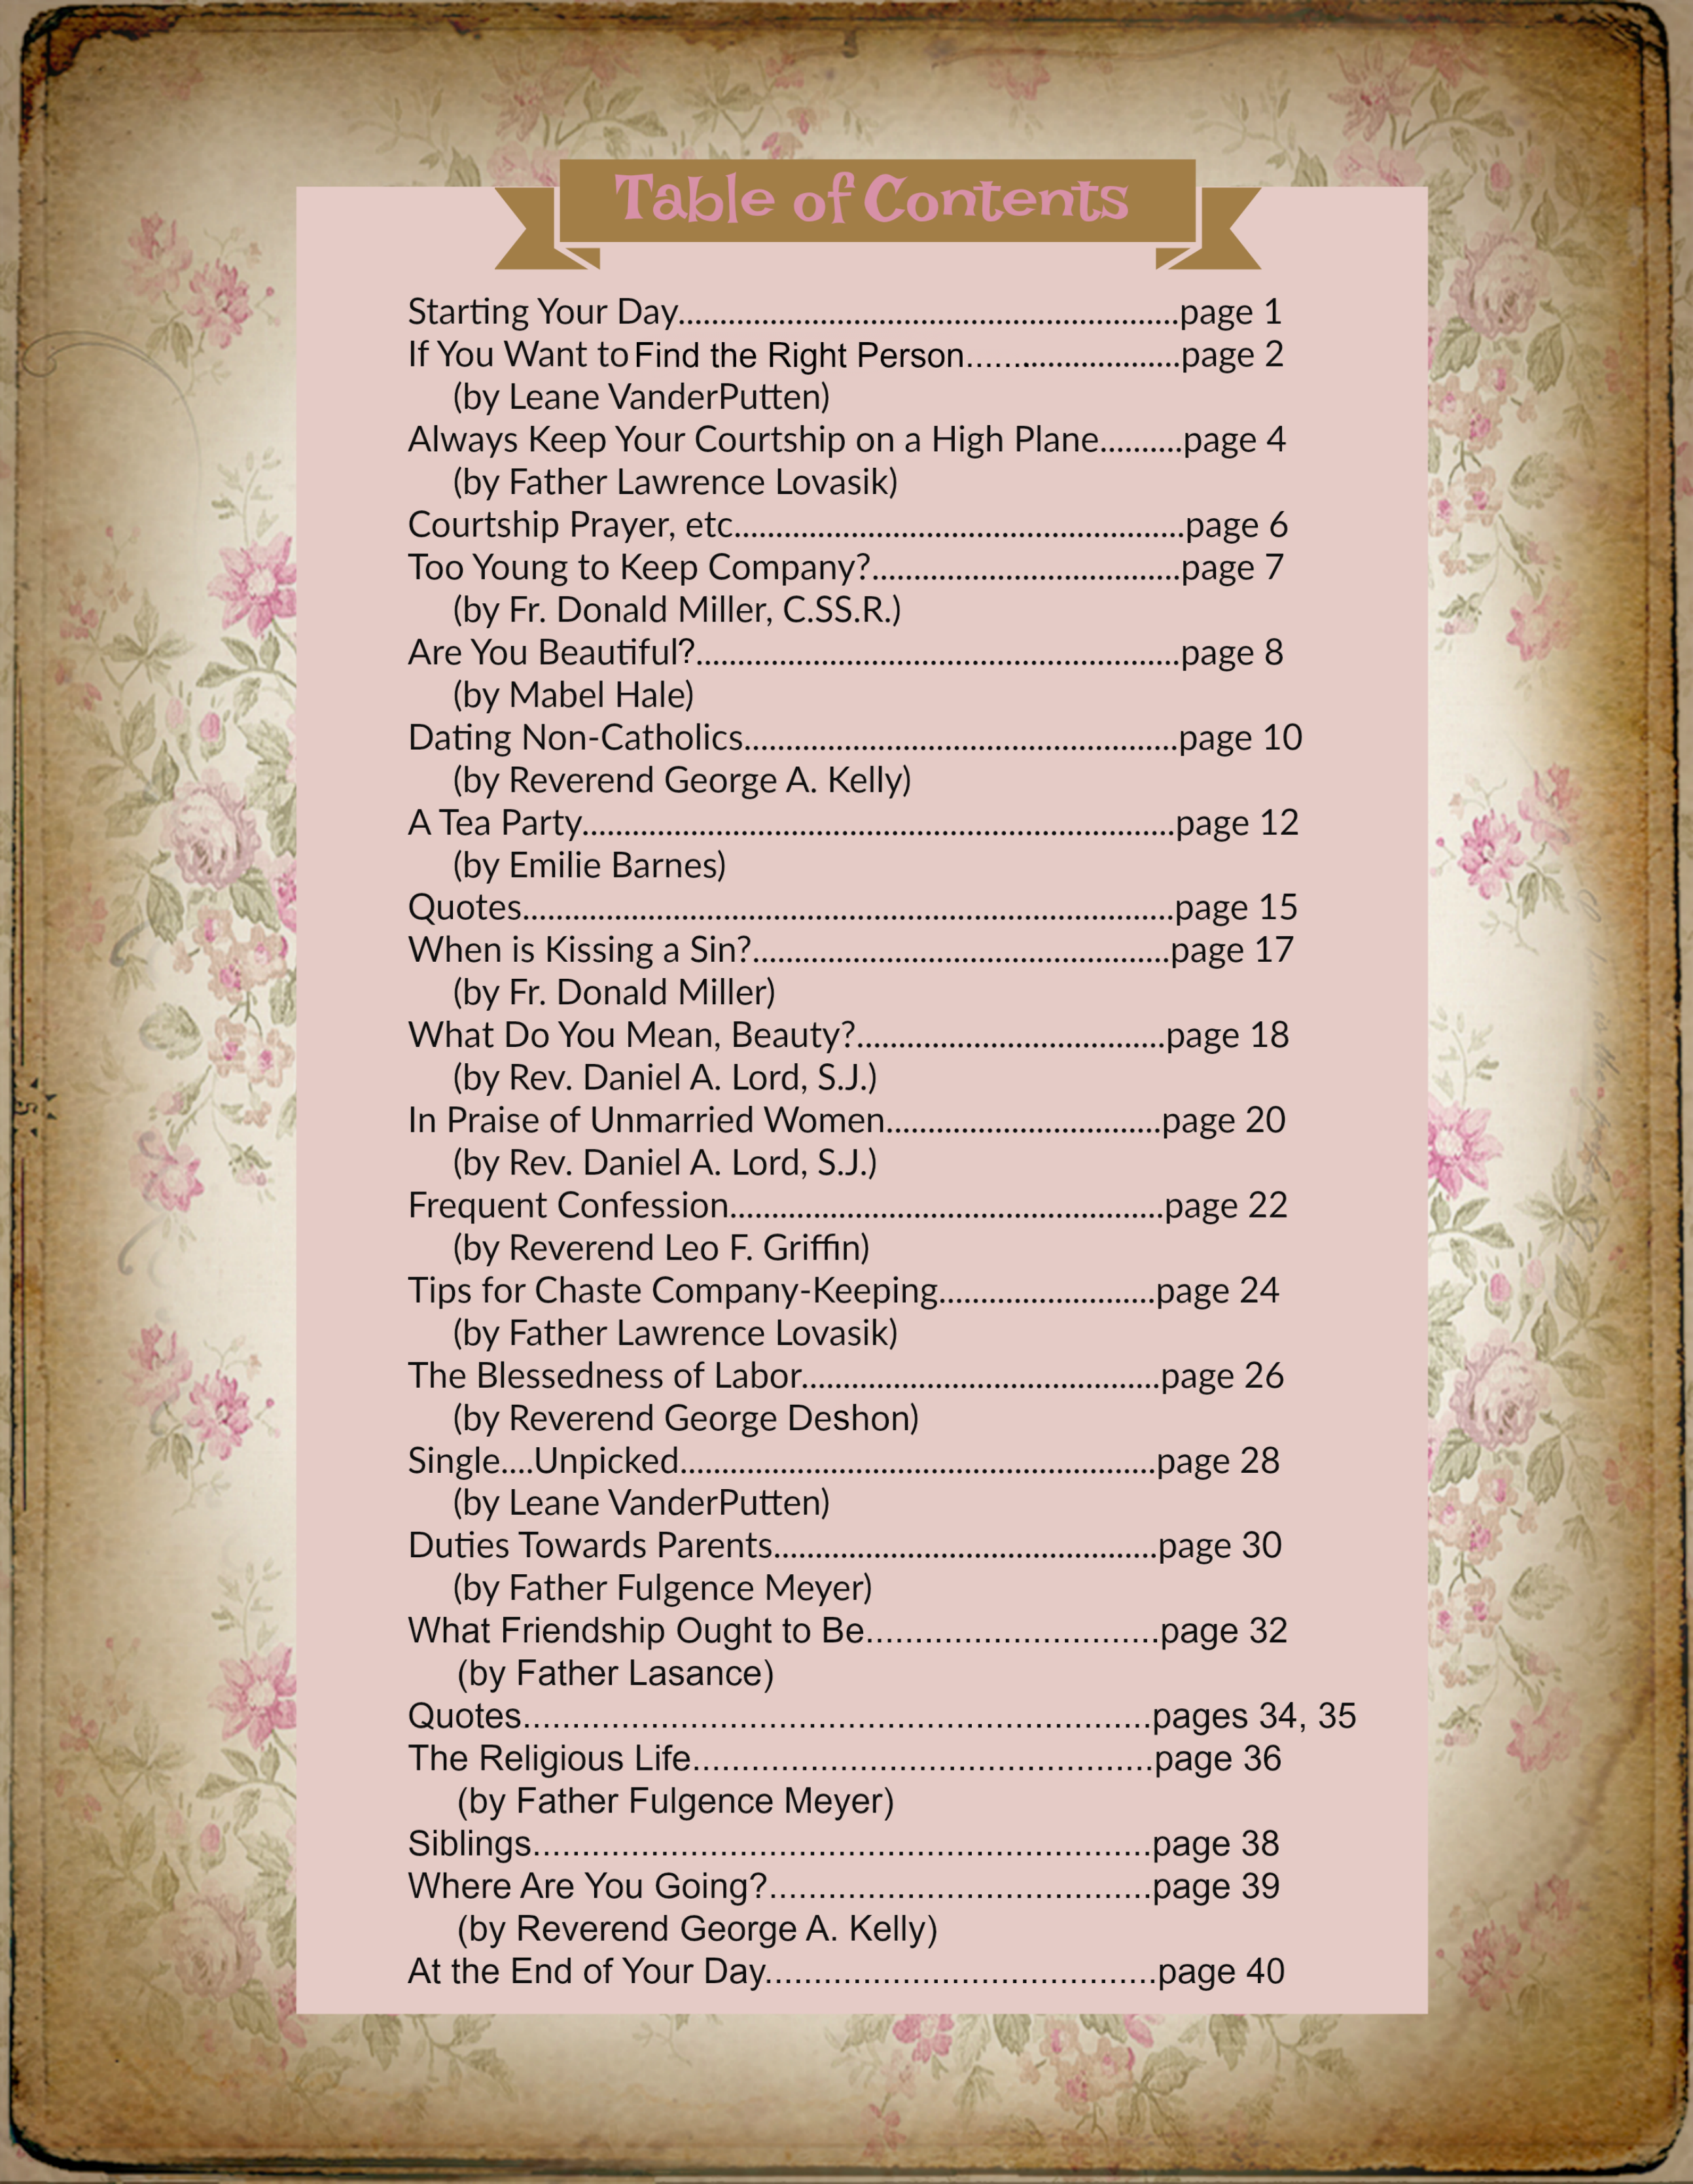 1Table of Contents